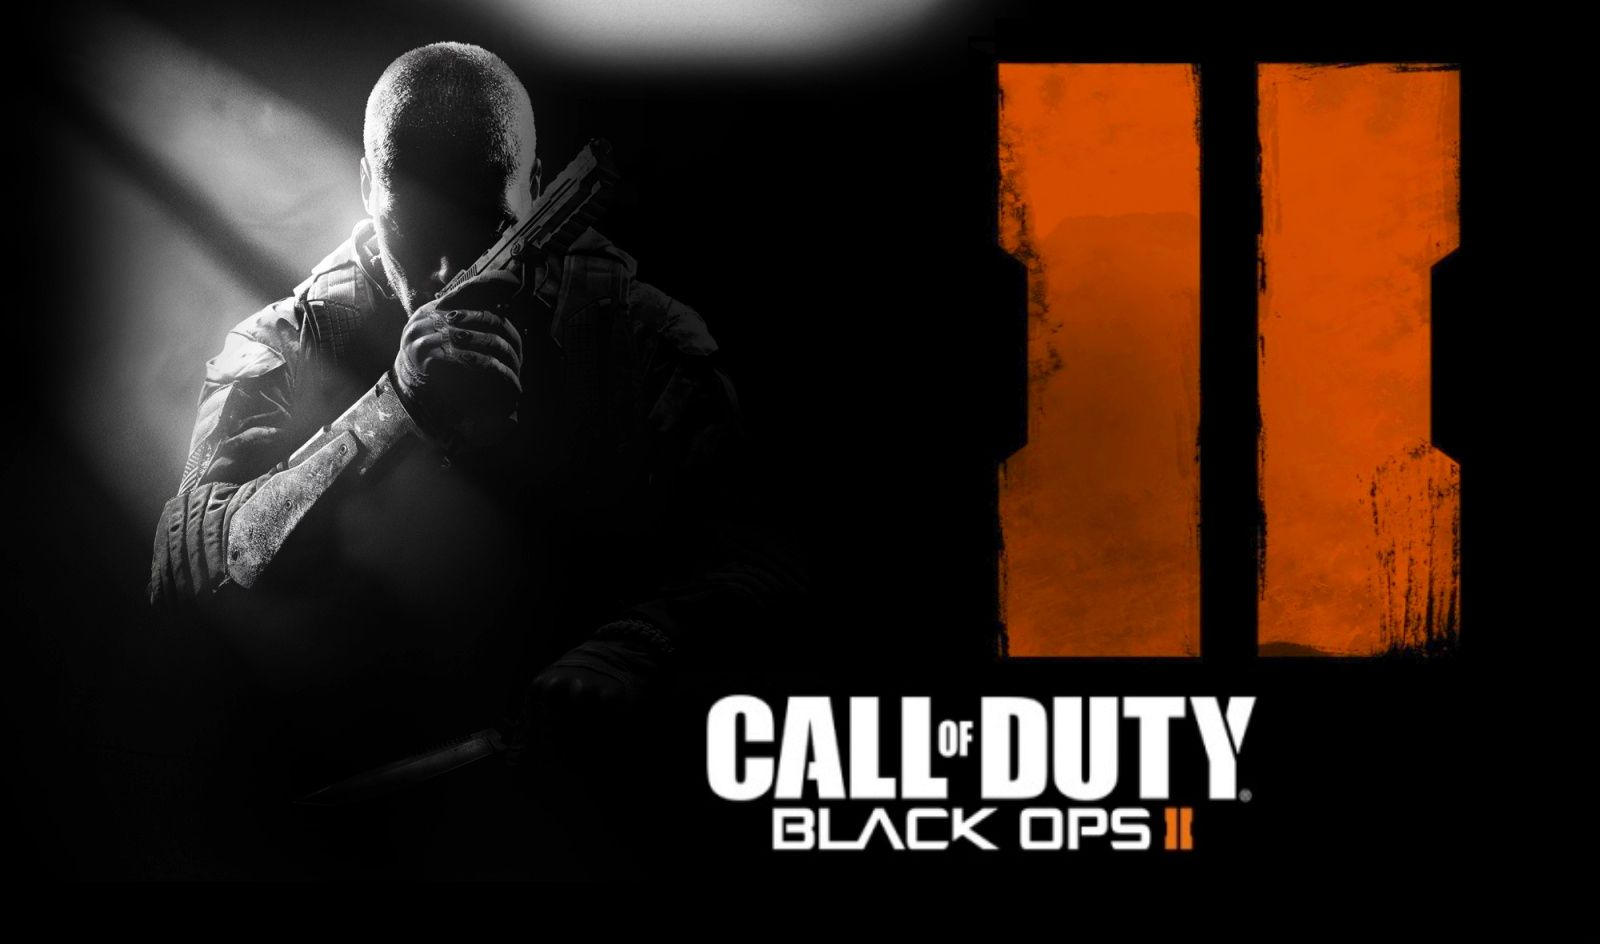 Call Duty Black Ops Ii Fhdq Wallpapers For Free